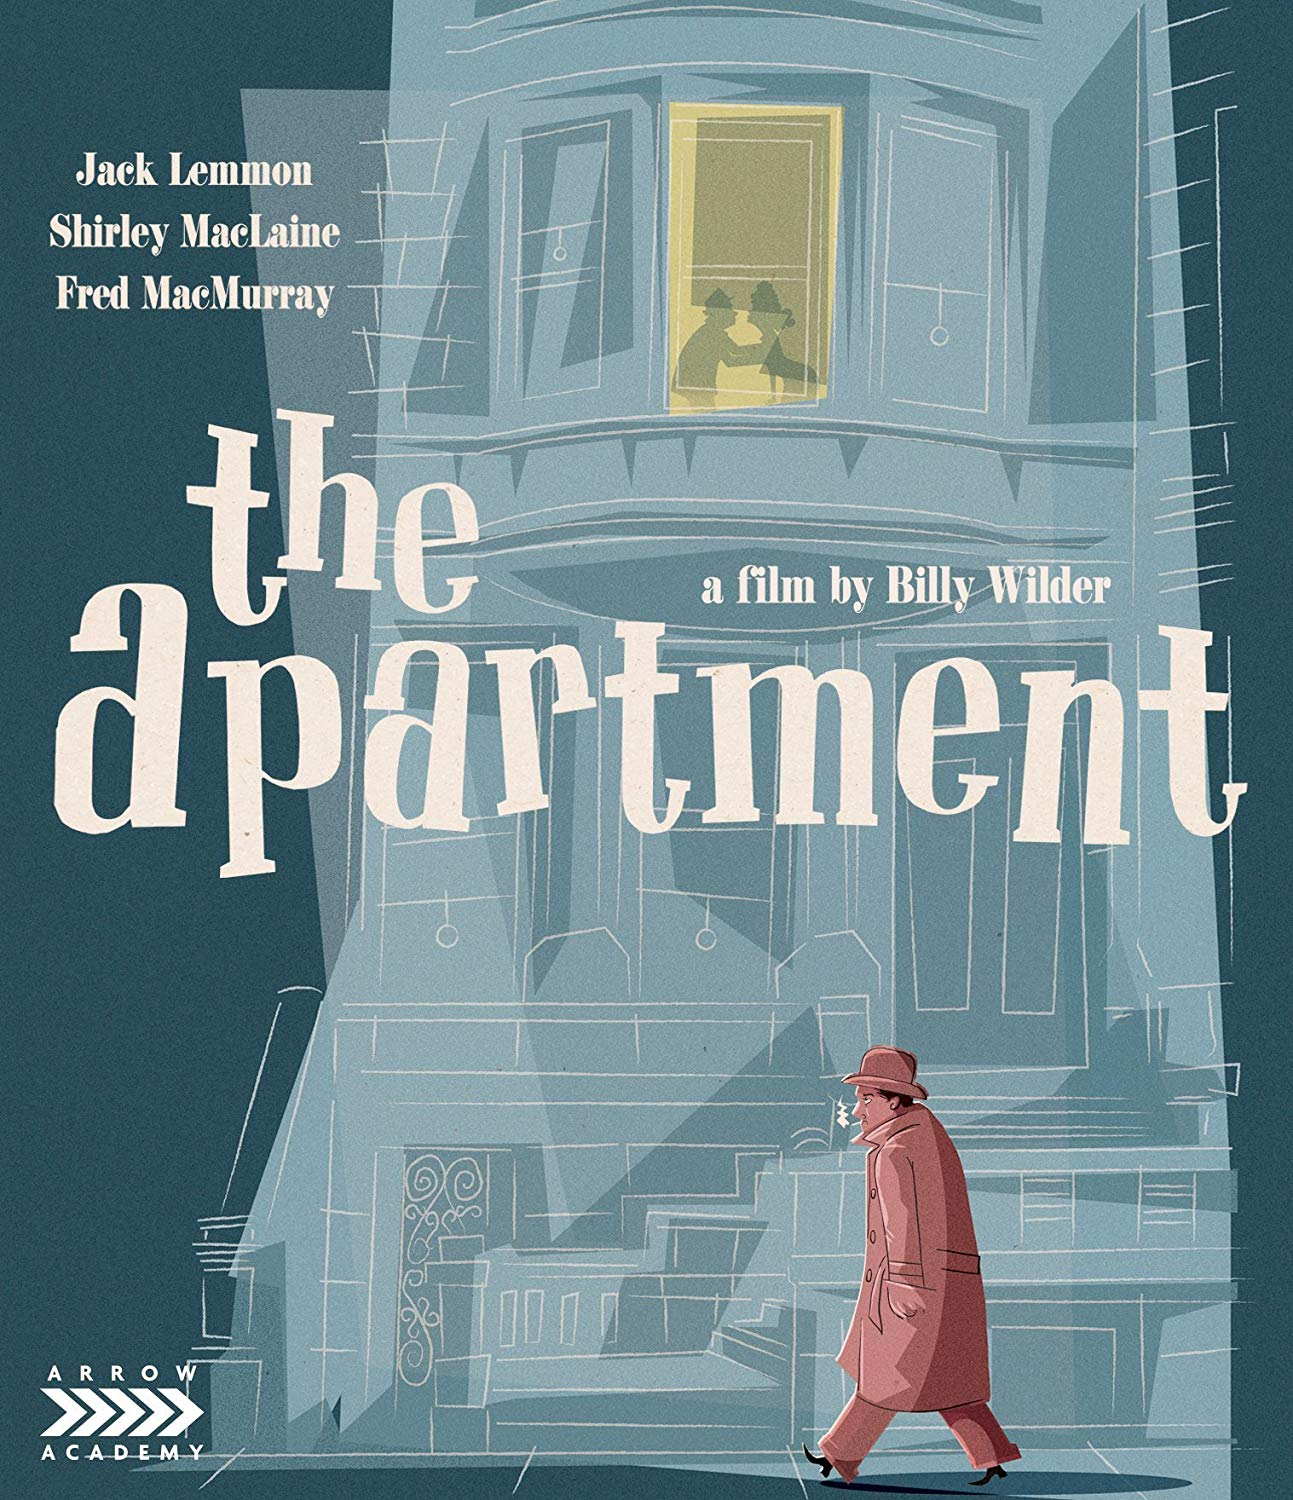 Apartment Film: Blu-ray's And DVD's